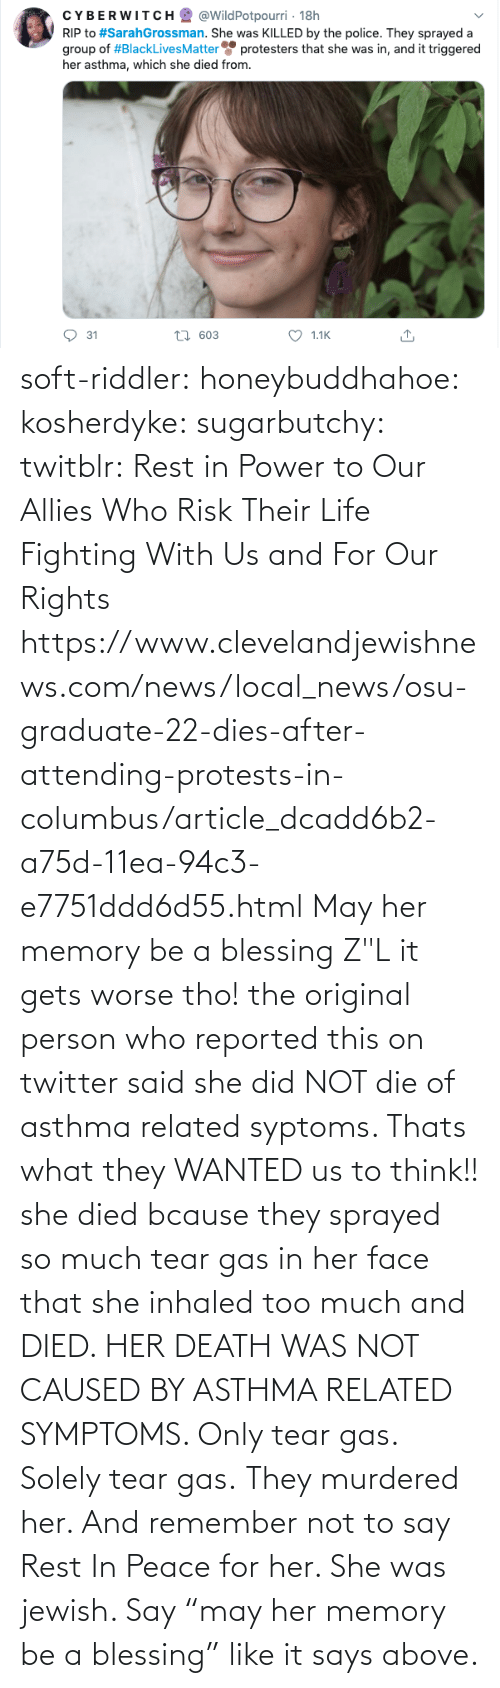 "rest: soft-riddler:  honeybuddhahoe:  kosherdyke:  sugarbutchy:  twitblr: Rest in Power to Our Allies Who Risk Their Life Fighting With Us and For Our Rights https://www.clevelandjewishnews.com/news/local_news/osu-graduate-22-dies-after-attending-protests-in-columbus/article_dcadd6b2-a75d-11ea-94c3-e7751ddd6d55.html    May her memory be a blessing Z""L  it gets worse tho! the original person who reported this on twitter said she did NOT die of asthma related syptoms. Thats what they WANTED us to think!! she died bcause they sprayed so much tear gas in her face that she inhaled too much and DIED. HER DEATH WAS NOT CAUSED BY ASTHMA RELATED SYMPTOMS. Only tear gas. Solely tear gas. They murdered her.     And remember not to say Rest In Peace for her. She was jewish. Say ""may her memory be a blessing"" like it says above."